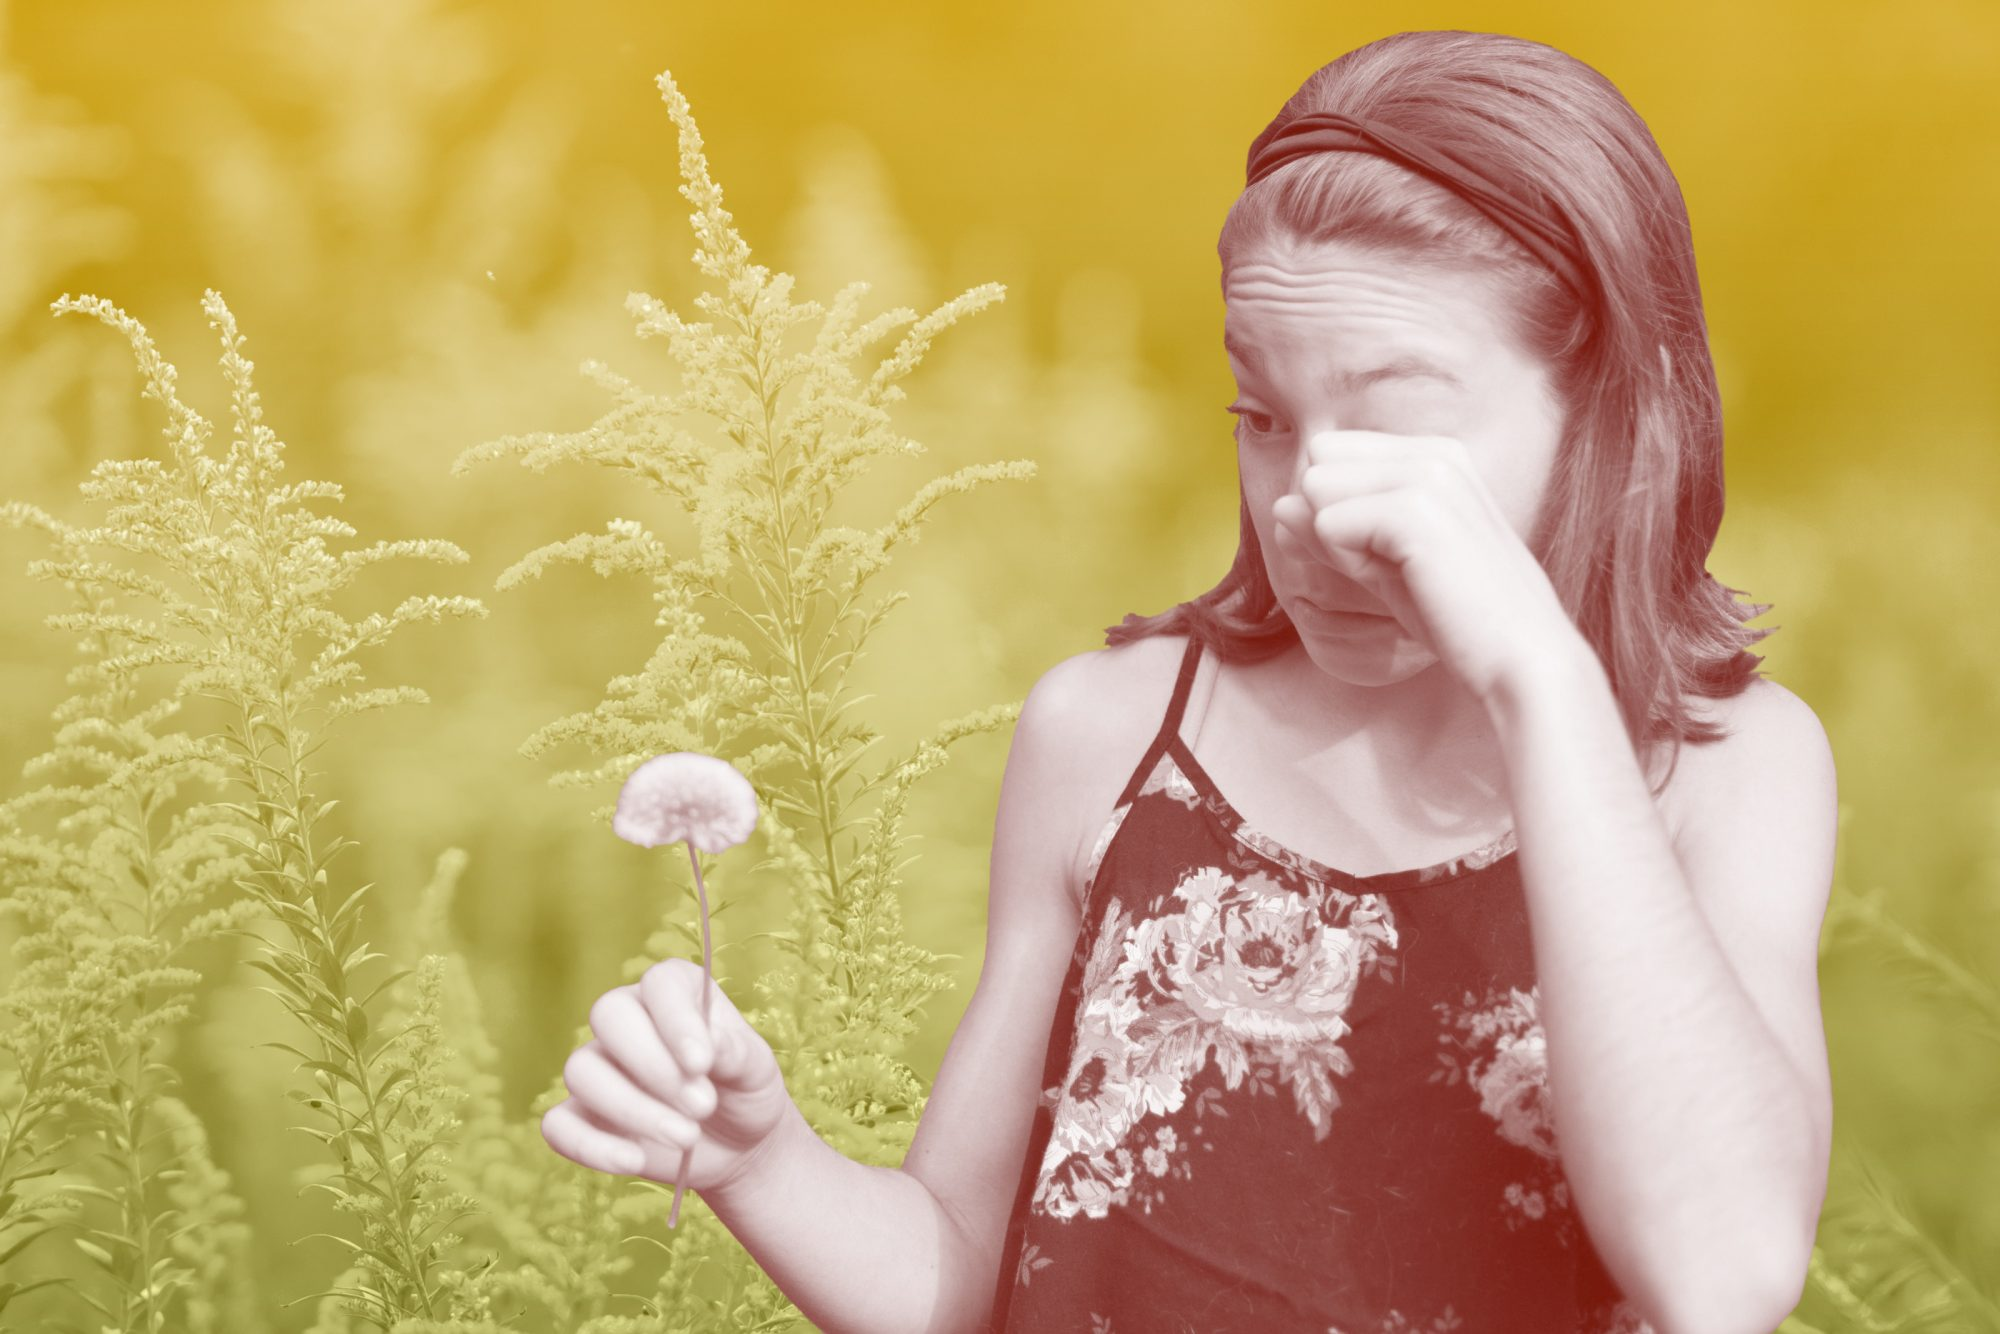 girl rubbing eyes in front of pollen